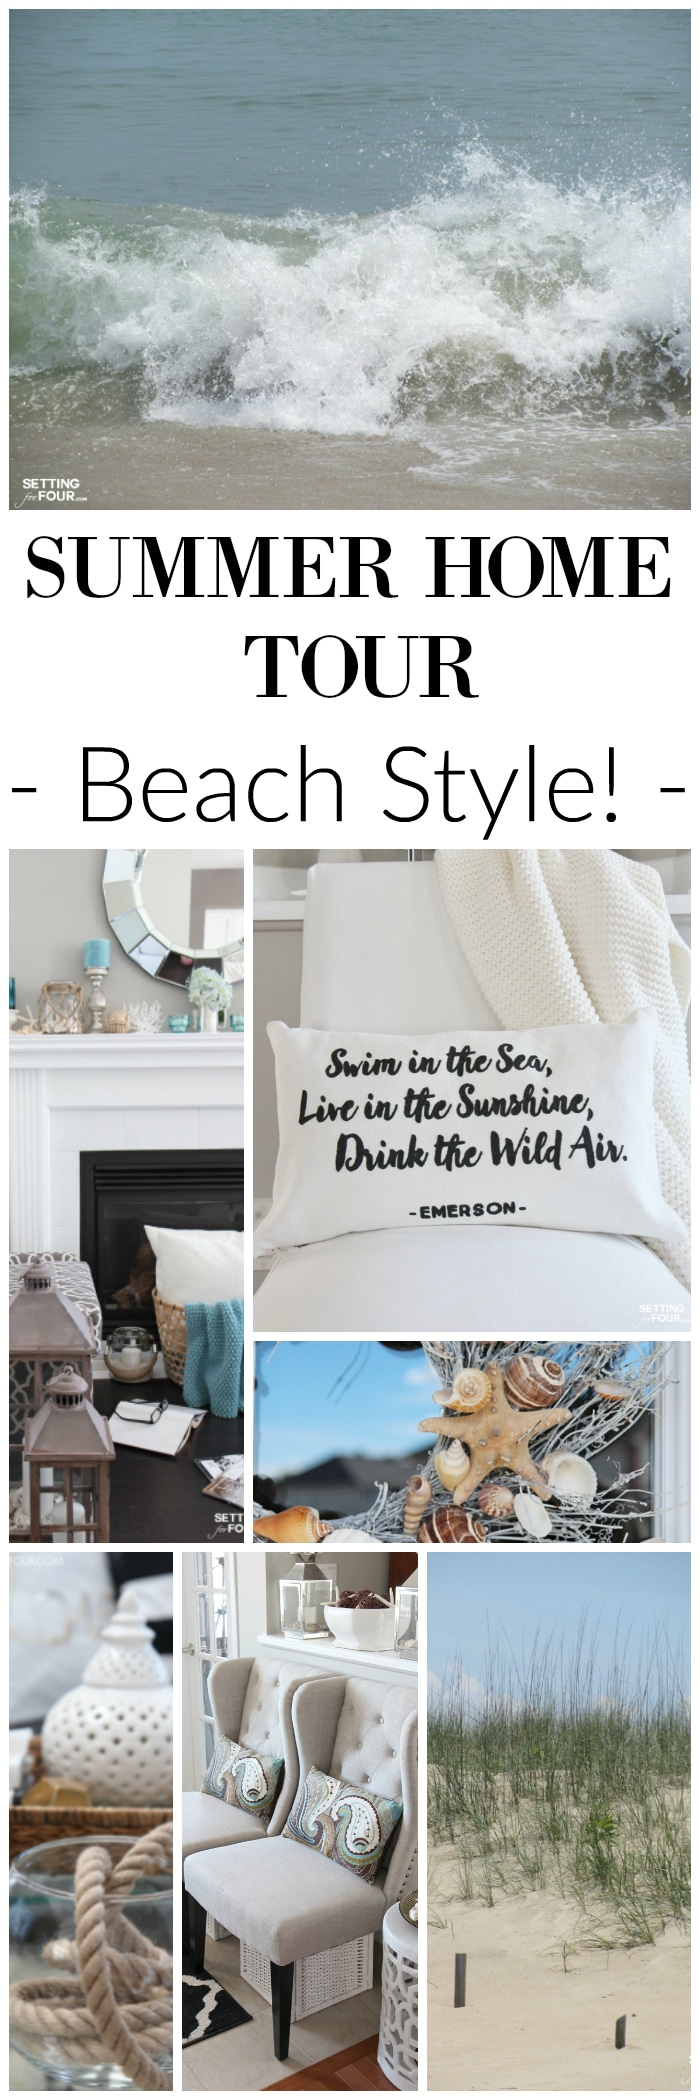 Beach Style Decorating Ideas - Setting for Four